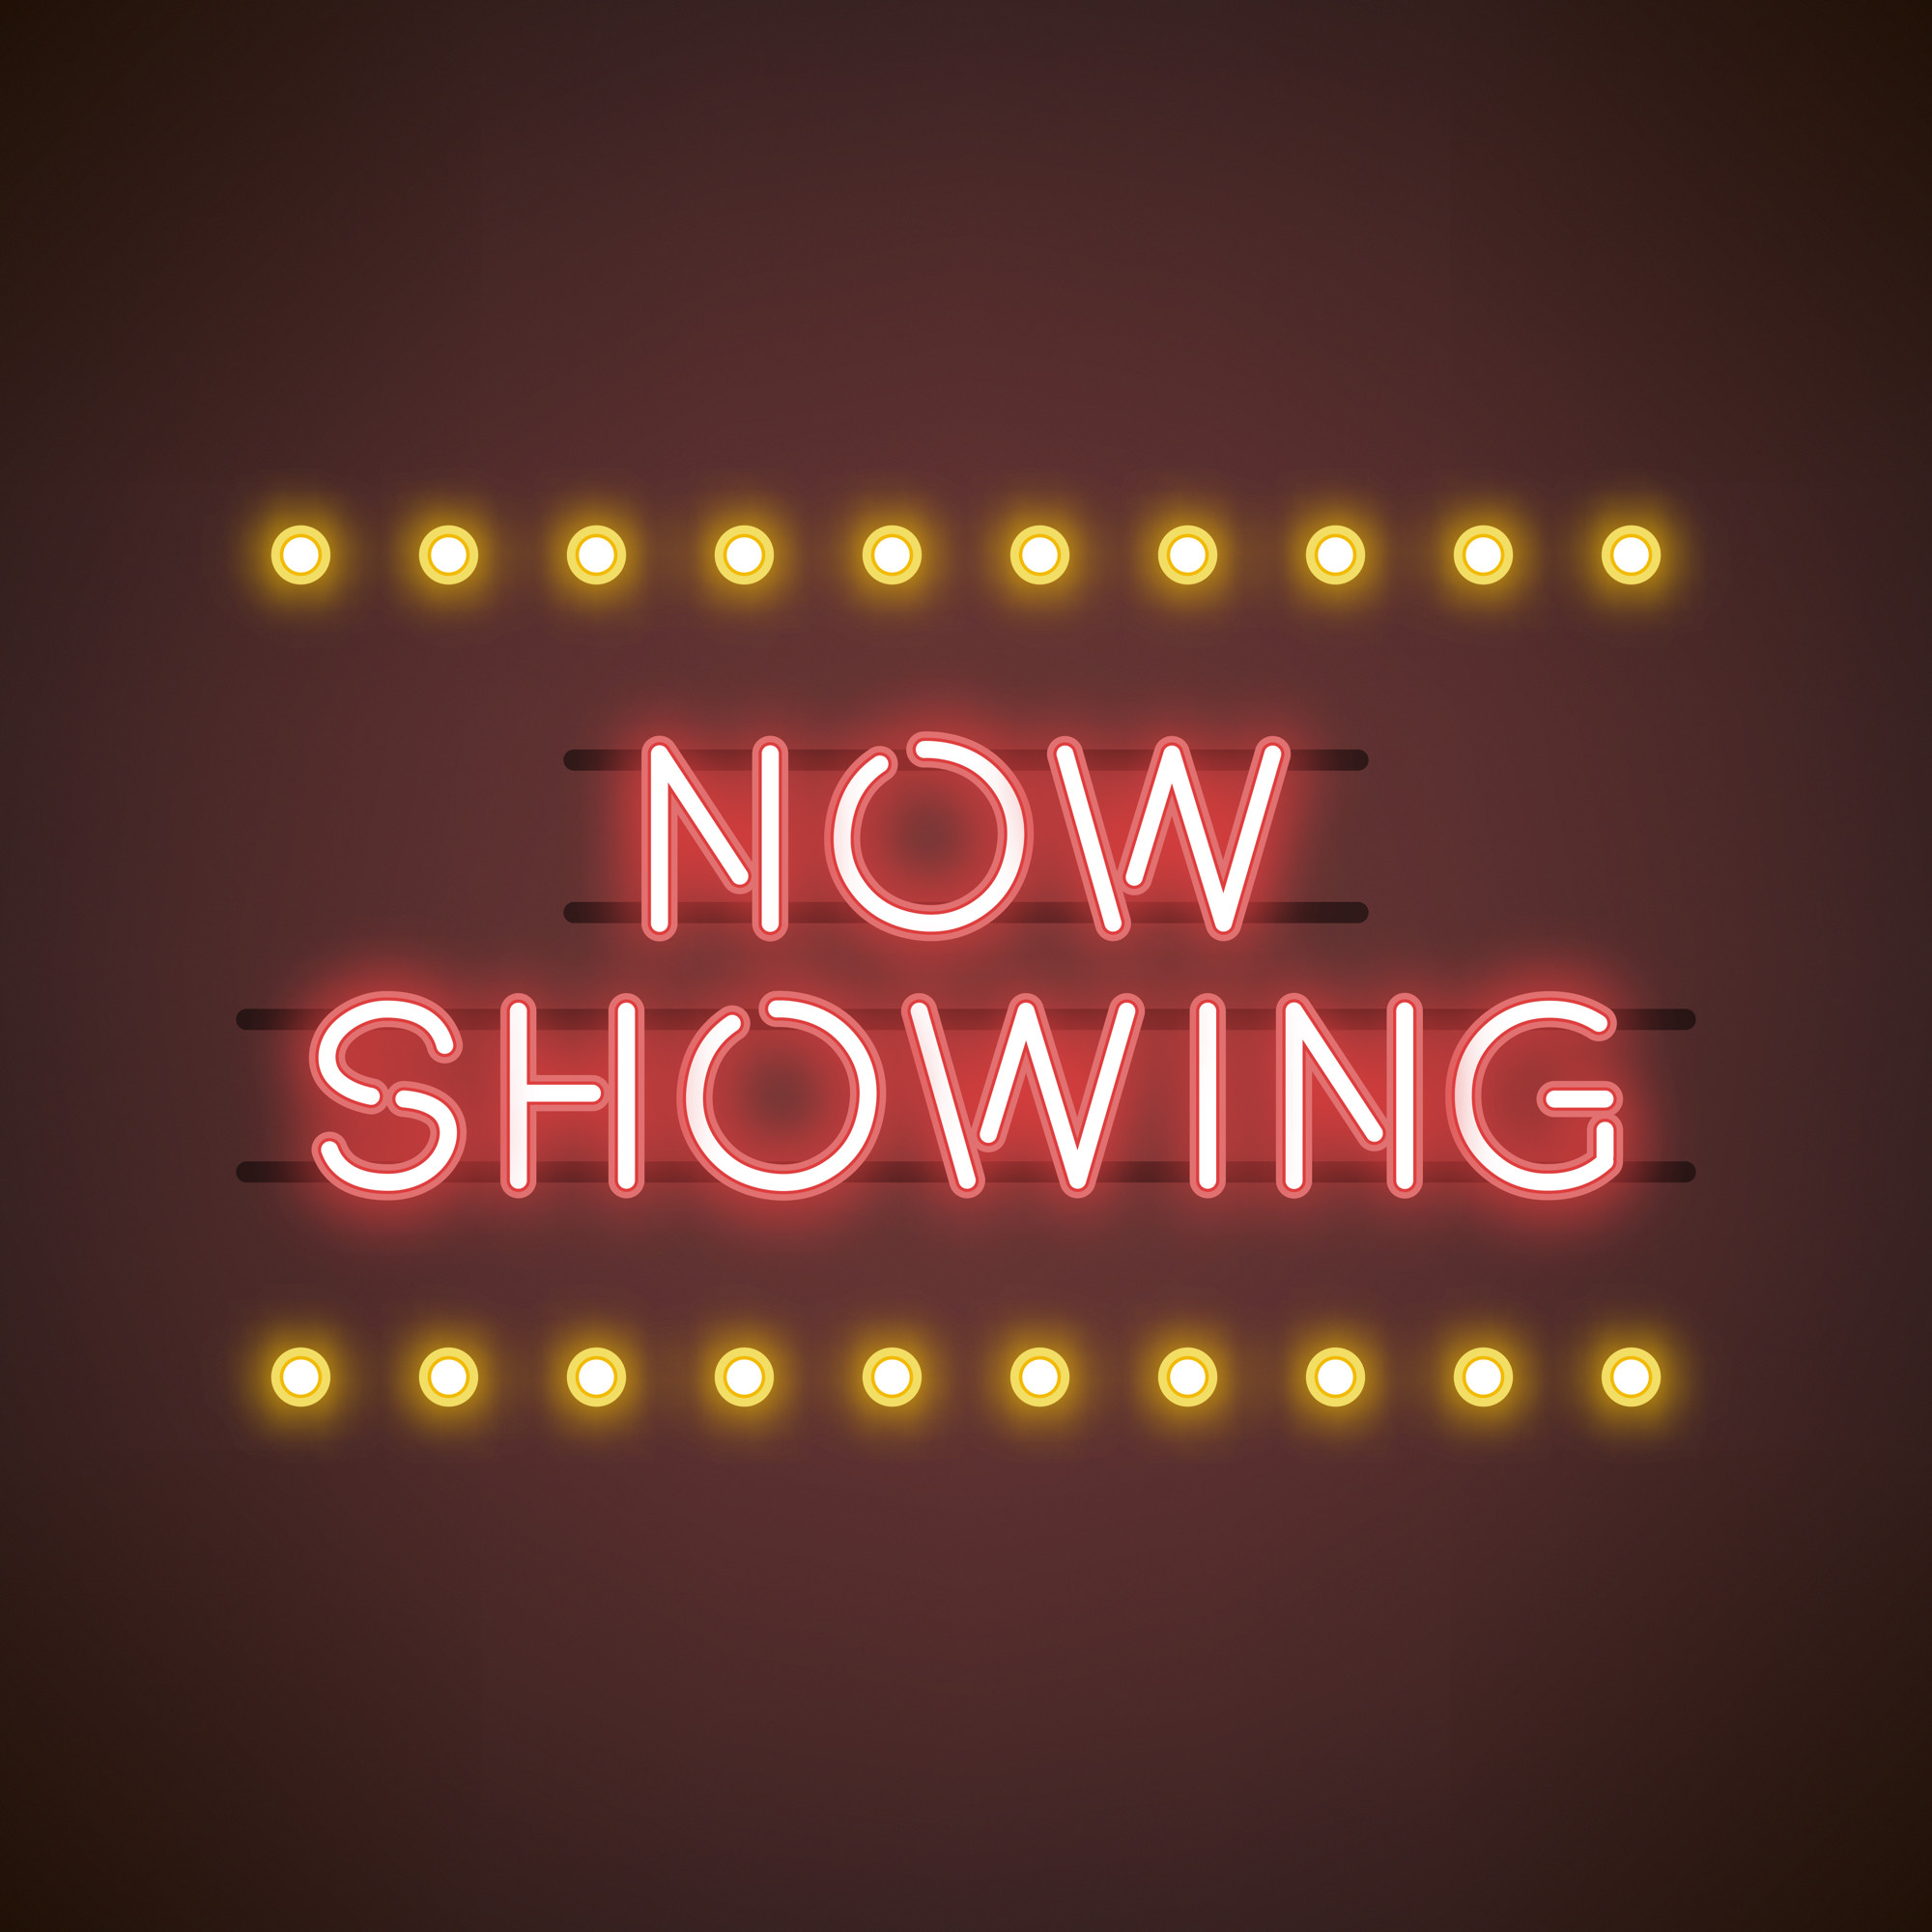 Now showing neon sign vector